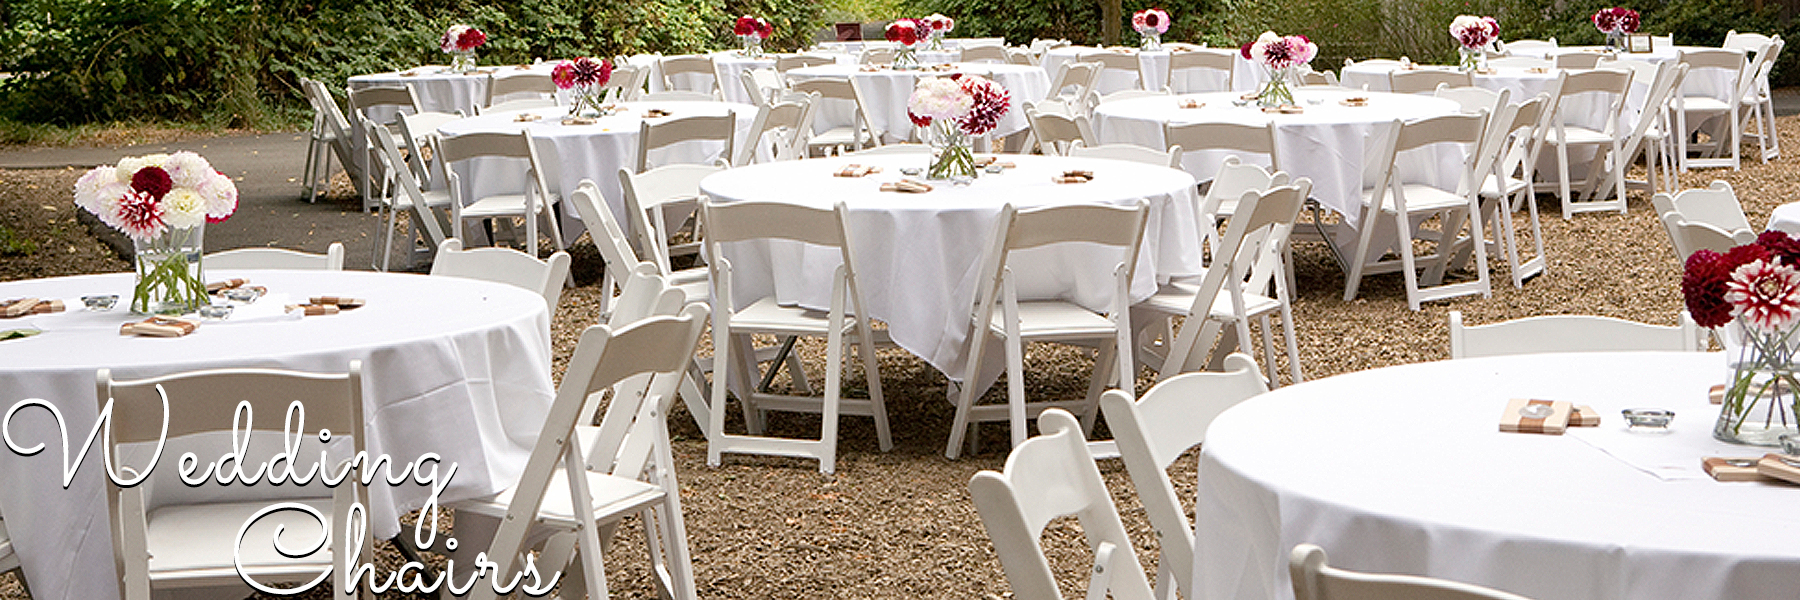 Folding Tables Chairs Chiavari Event Furniture S